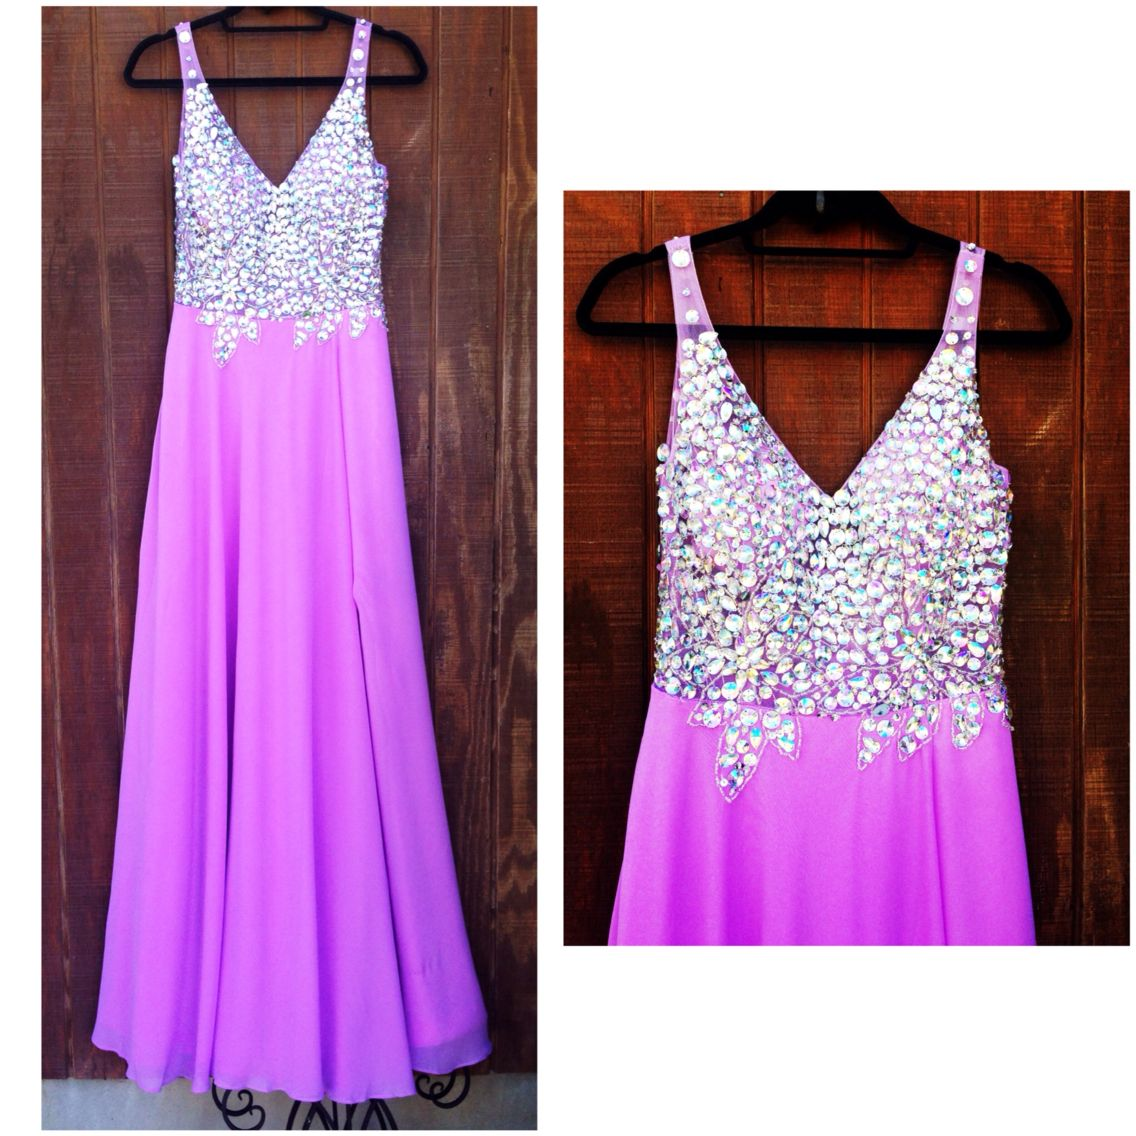 Long Formal Prom Dresses Available For Rent At Bling It On Dress